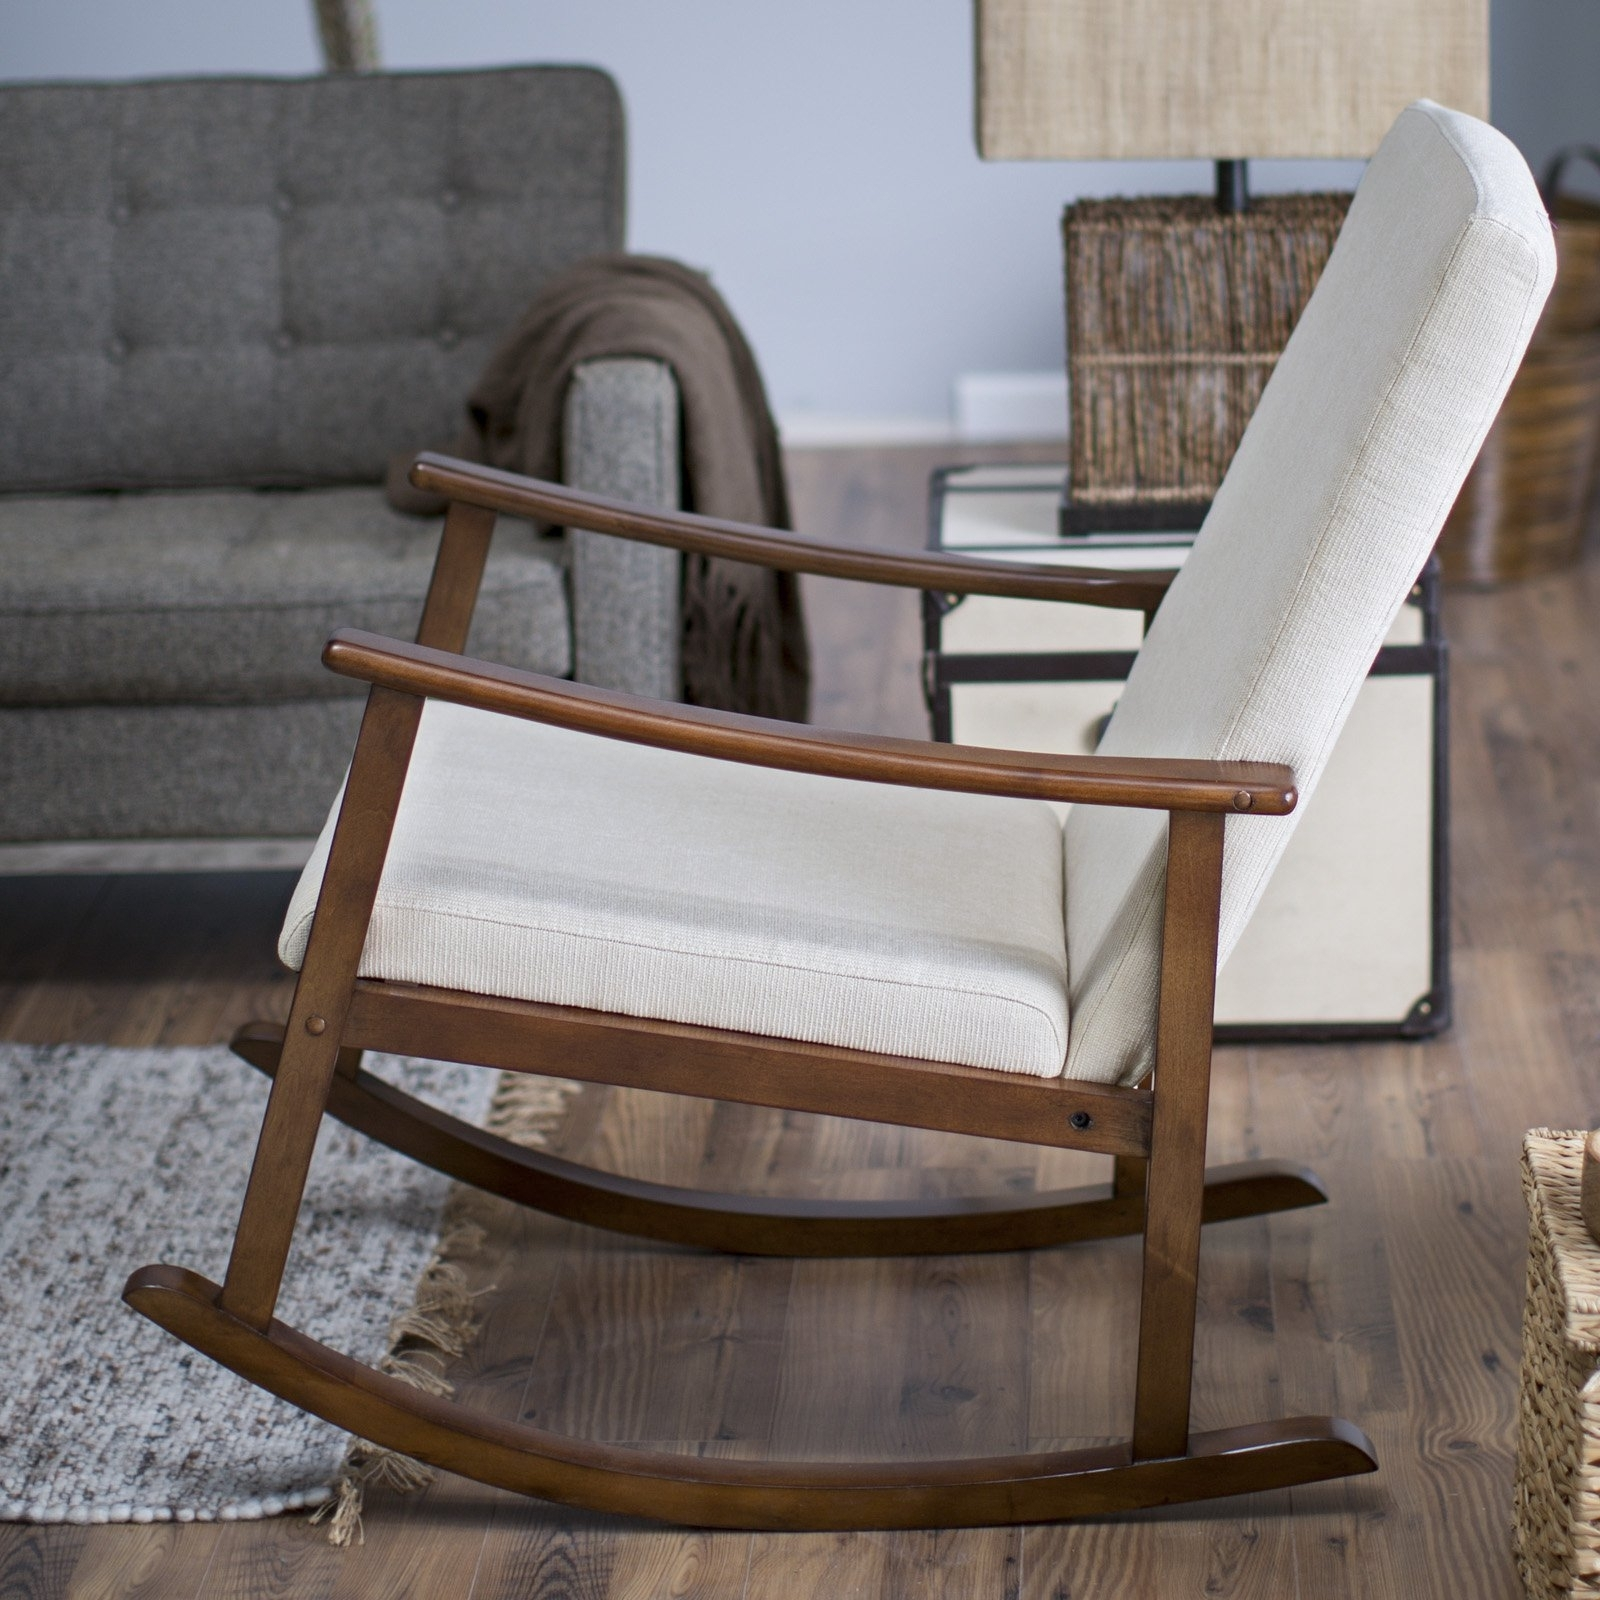 Rocking Chairs With Regard To Famous Belham Living Holden Modern Indoor Rocking Chair – Upholstered (View 6 of 20)